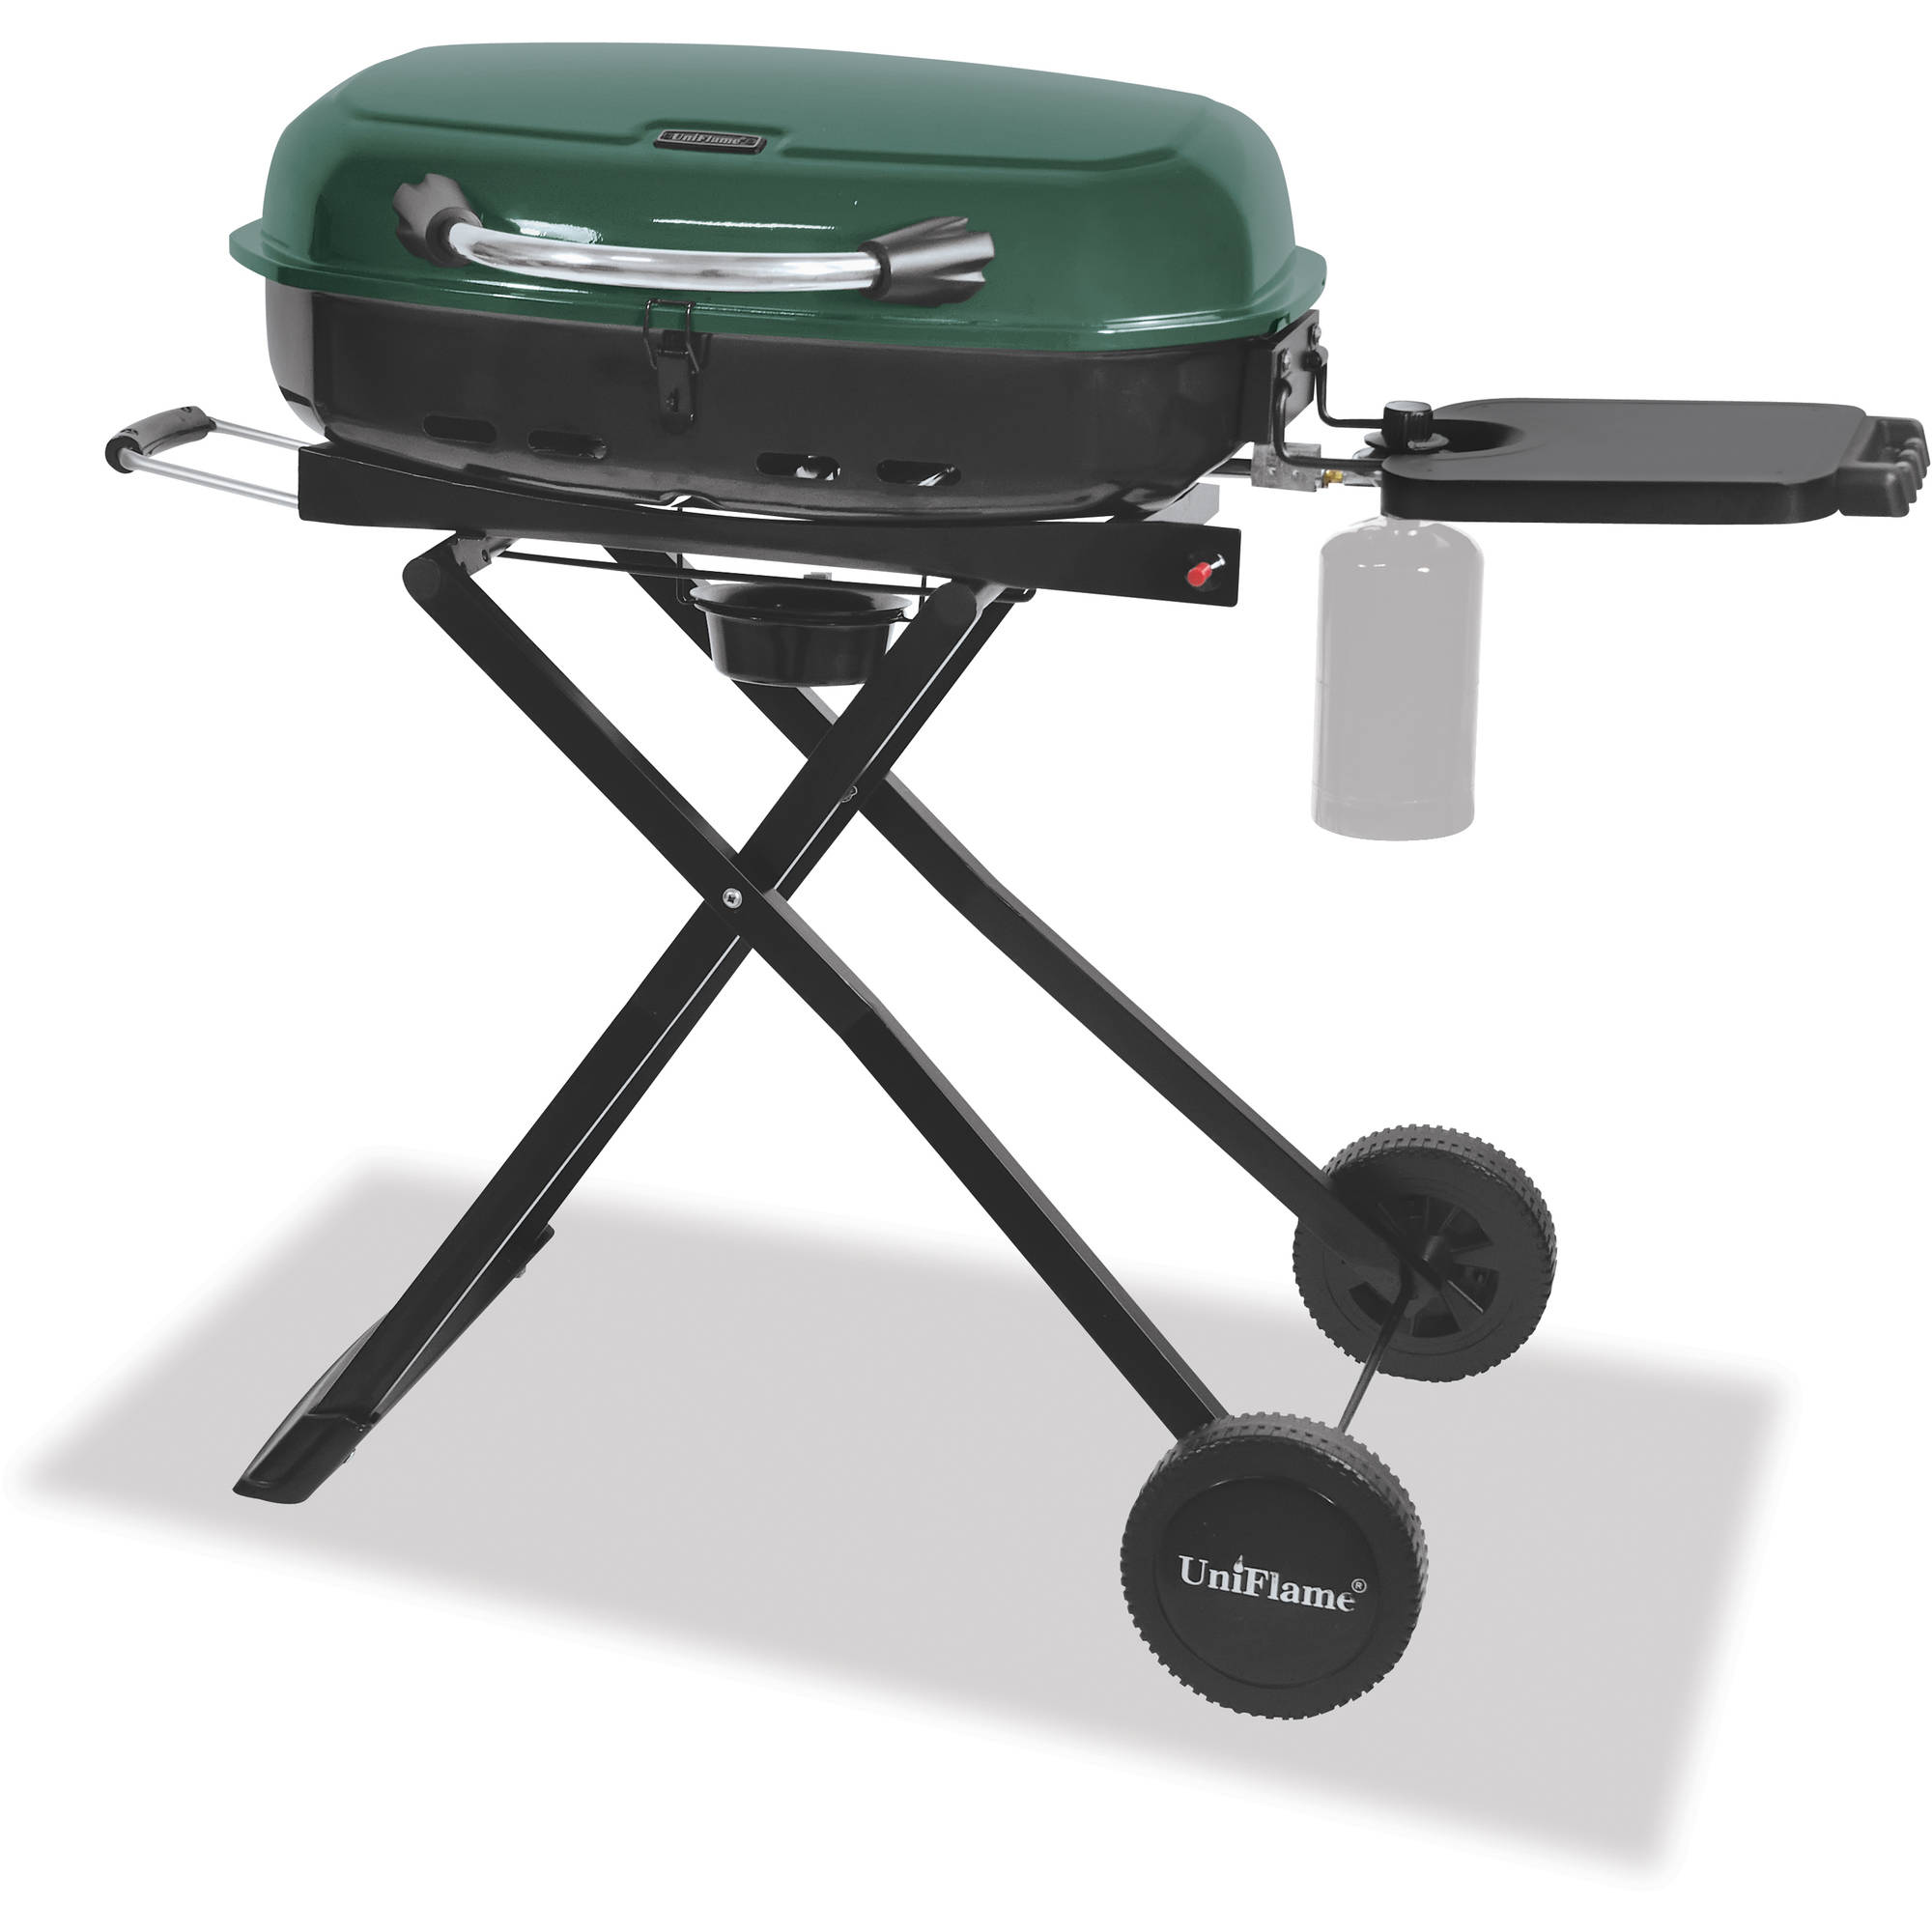 UniFlame 15,000 BTUs Gas Tailgating Grill